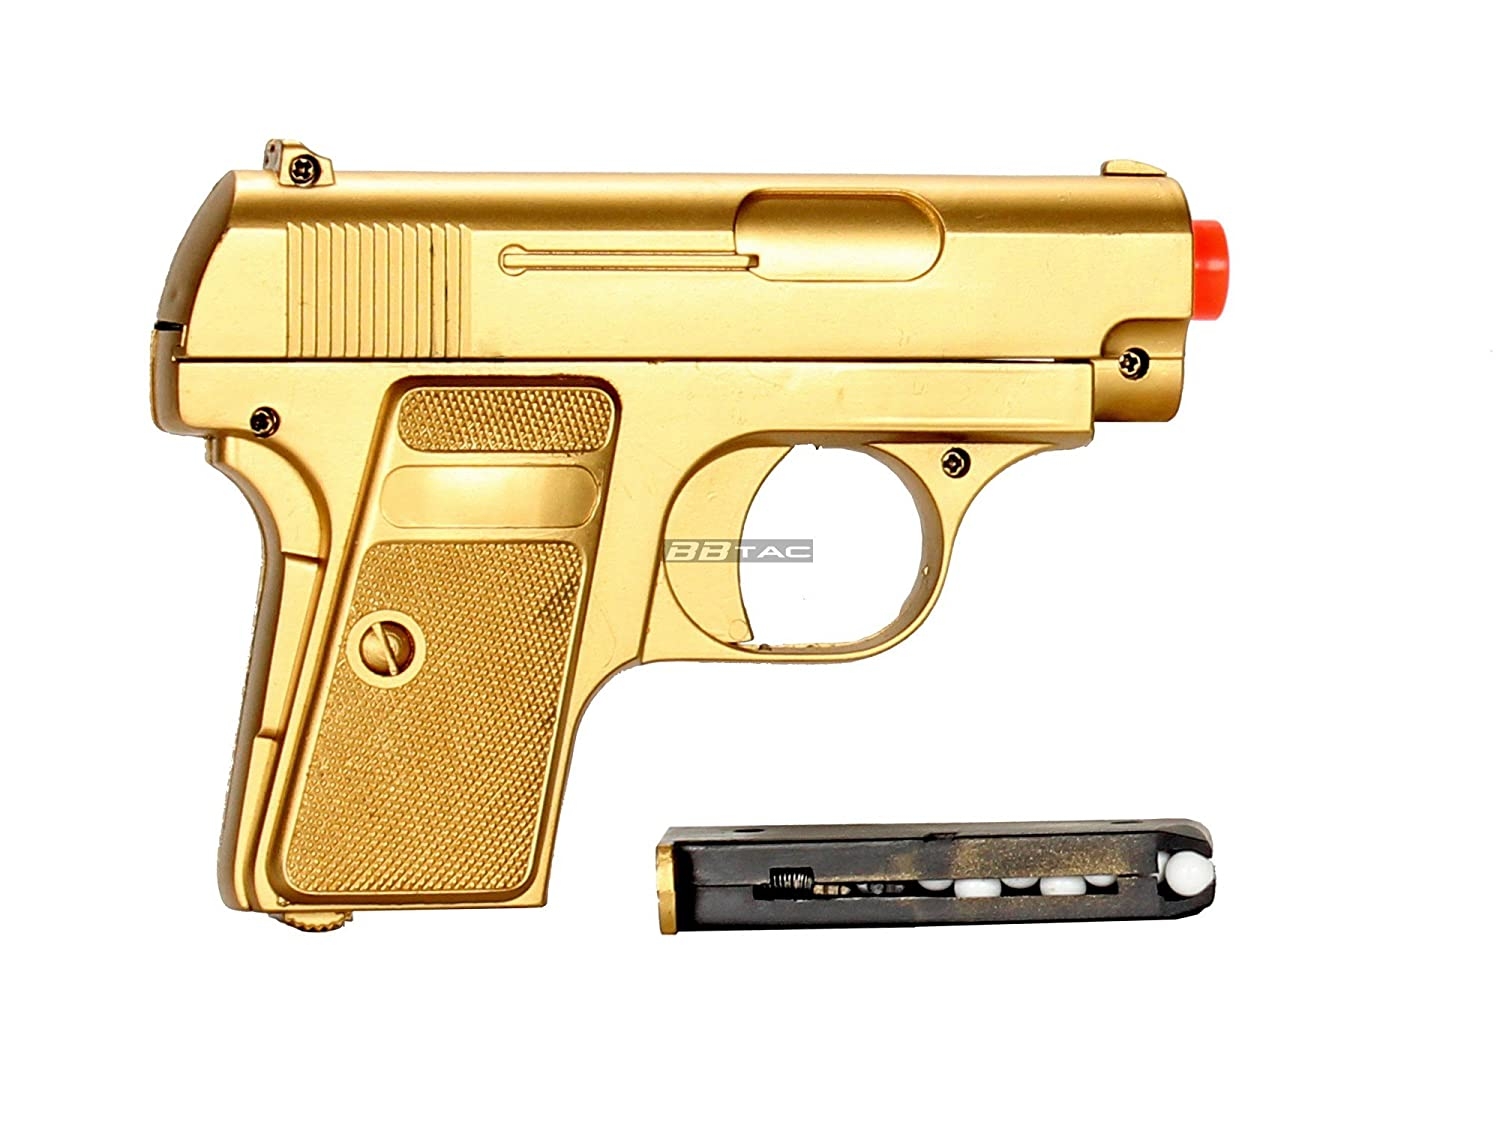 Amazon.com: bbtac bt-p169 (1 + 1) P169 – Pistola airsoft ...